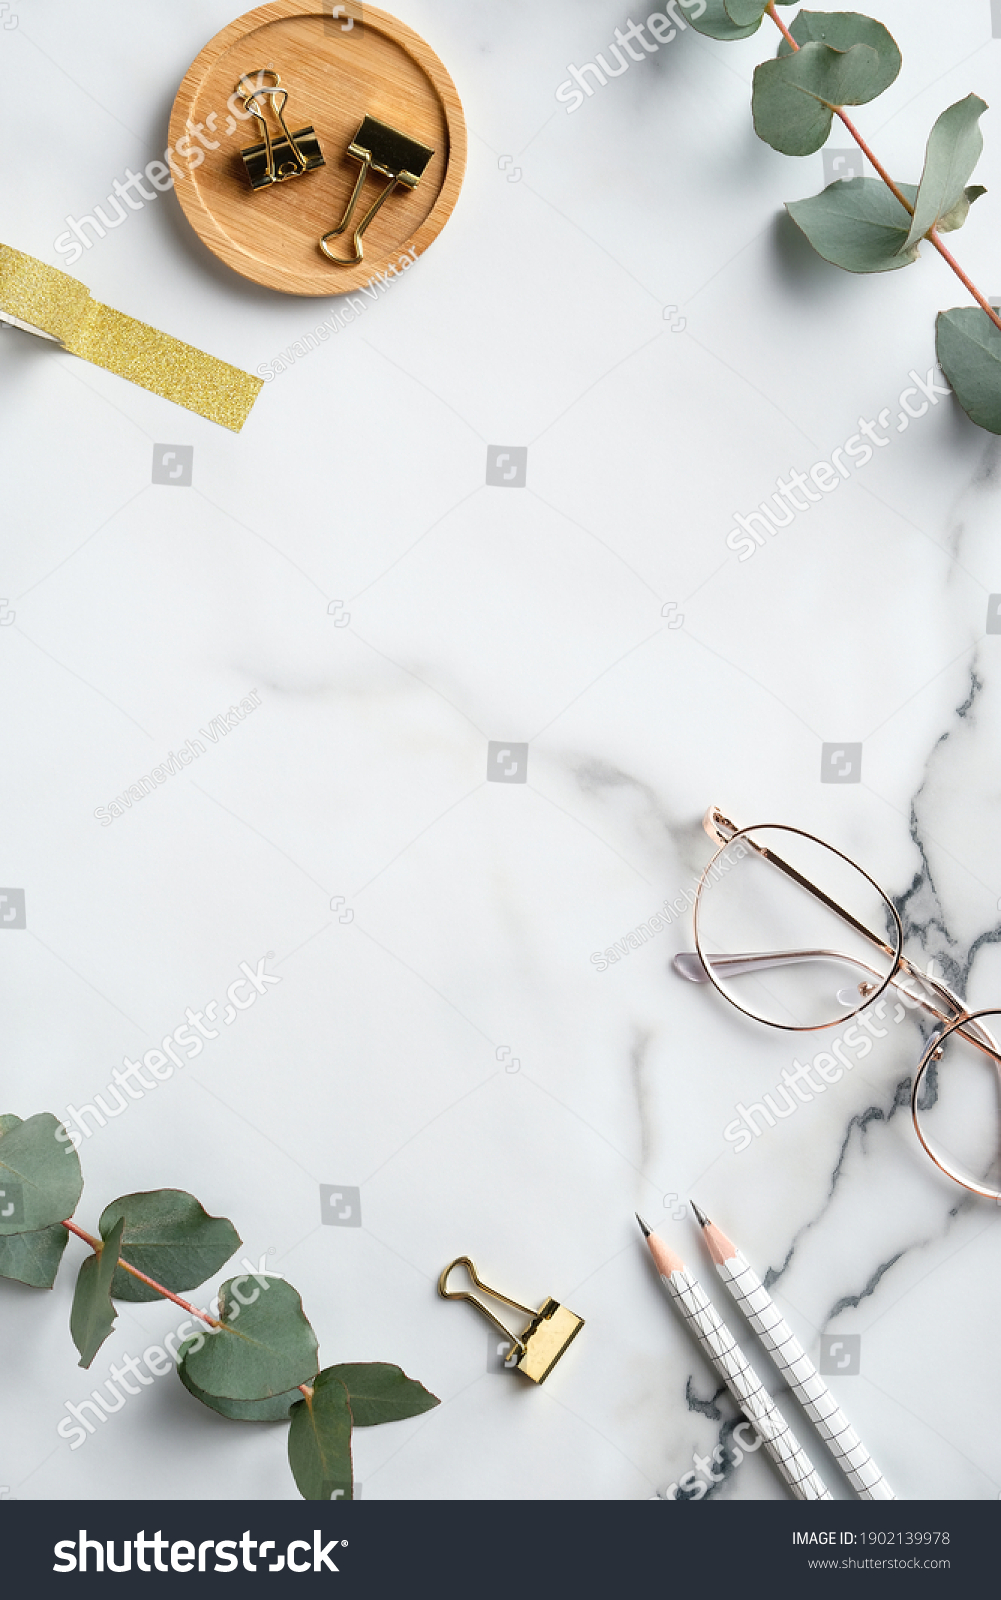 Flat lay home office desk table. Feminine workspace with glasses, office supplies, greenery on marble background. Elegant freelancer workplace #1902139978